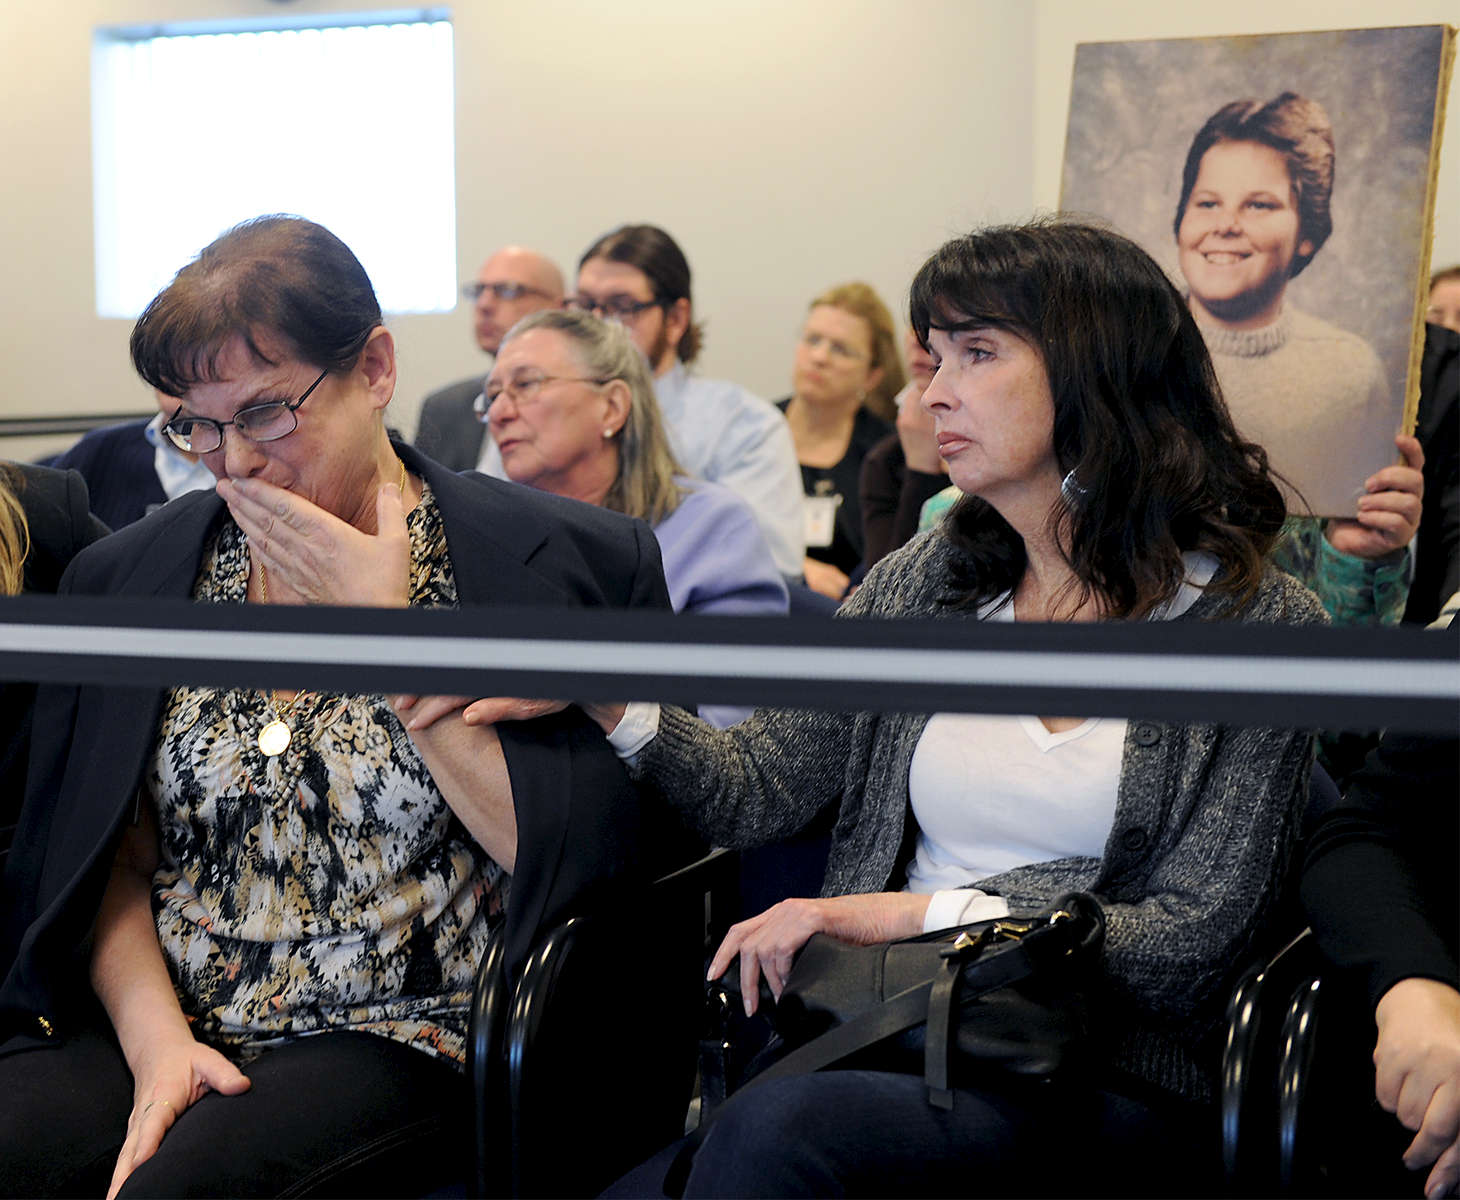 3/29/16 NATICK--   Jeanne Quinn, left, is consoled by family and friends at the Mass. Parole Board hearing Tuesday for Rod Matthews, who murdered Quinn's son, Shaun Ouillette, in Canton in 1986, when both boys were 14 years old. A photo of Shaun was held up by a family member throughout the four hour hearing.Photo by Art Illman/MetroWest Daily News